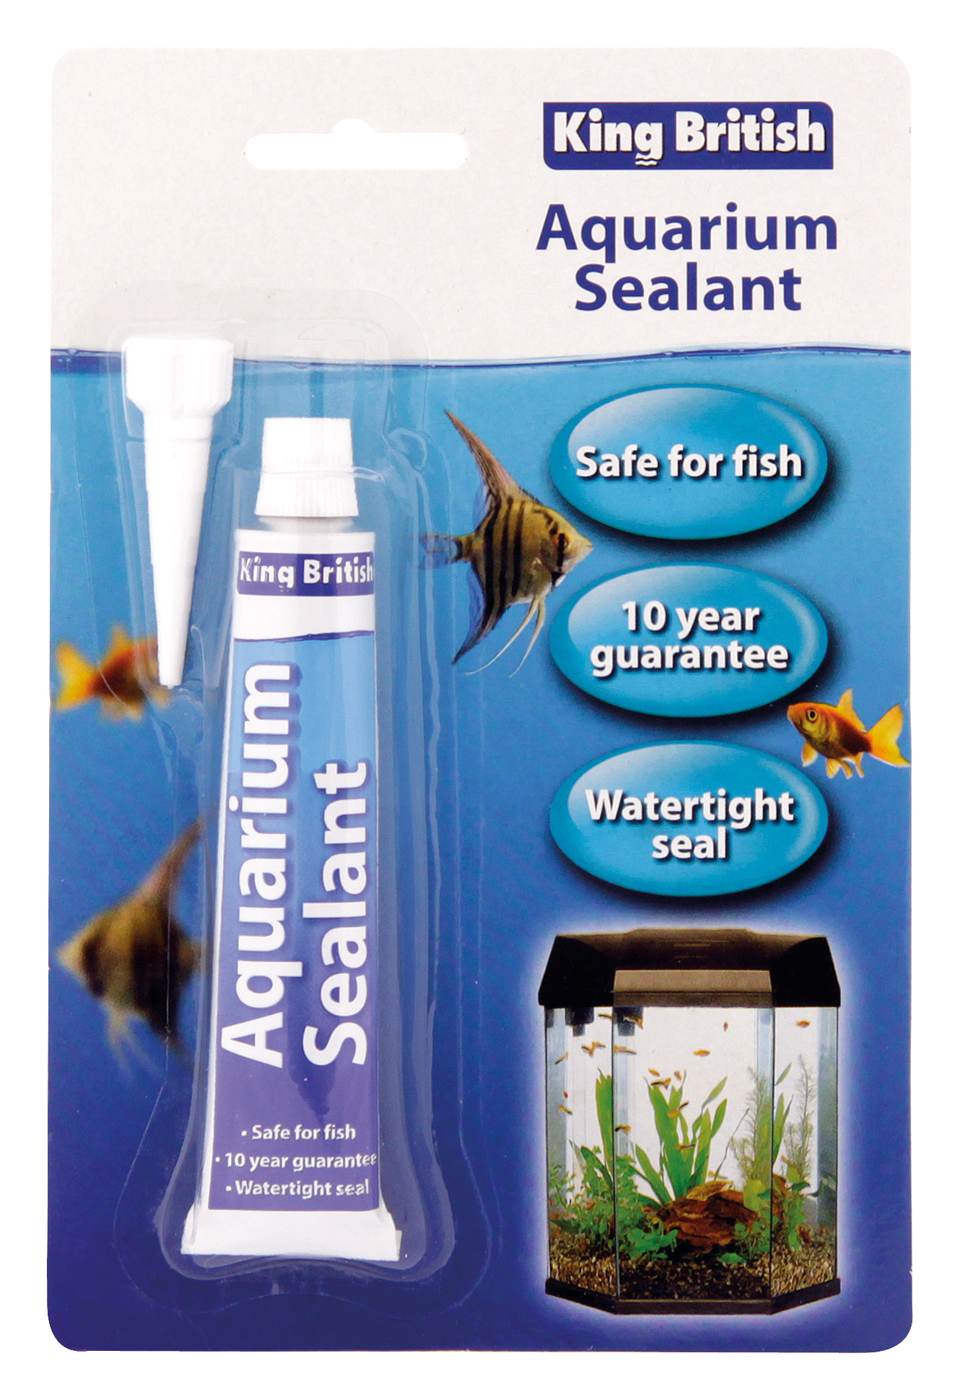 King British Aquarium Sealant